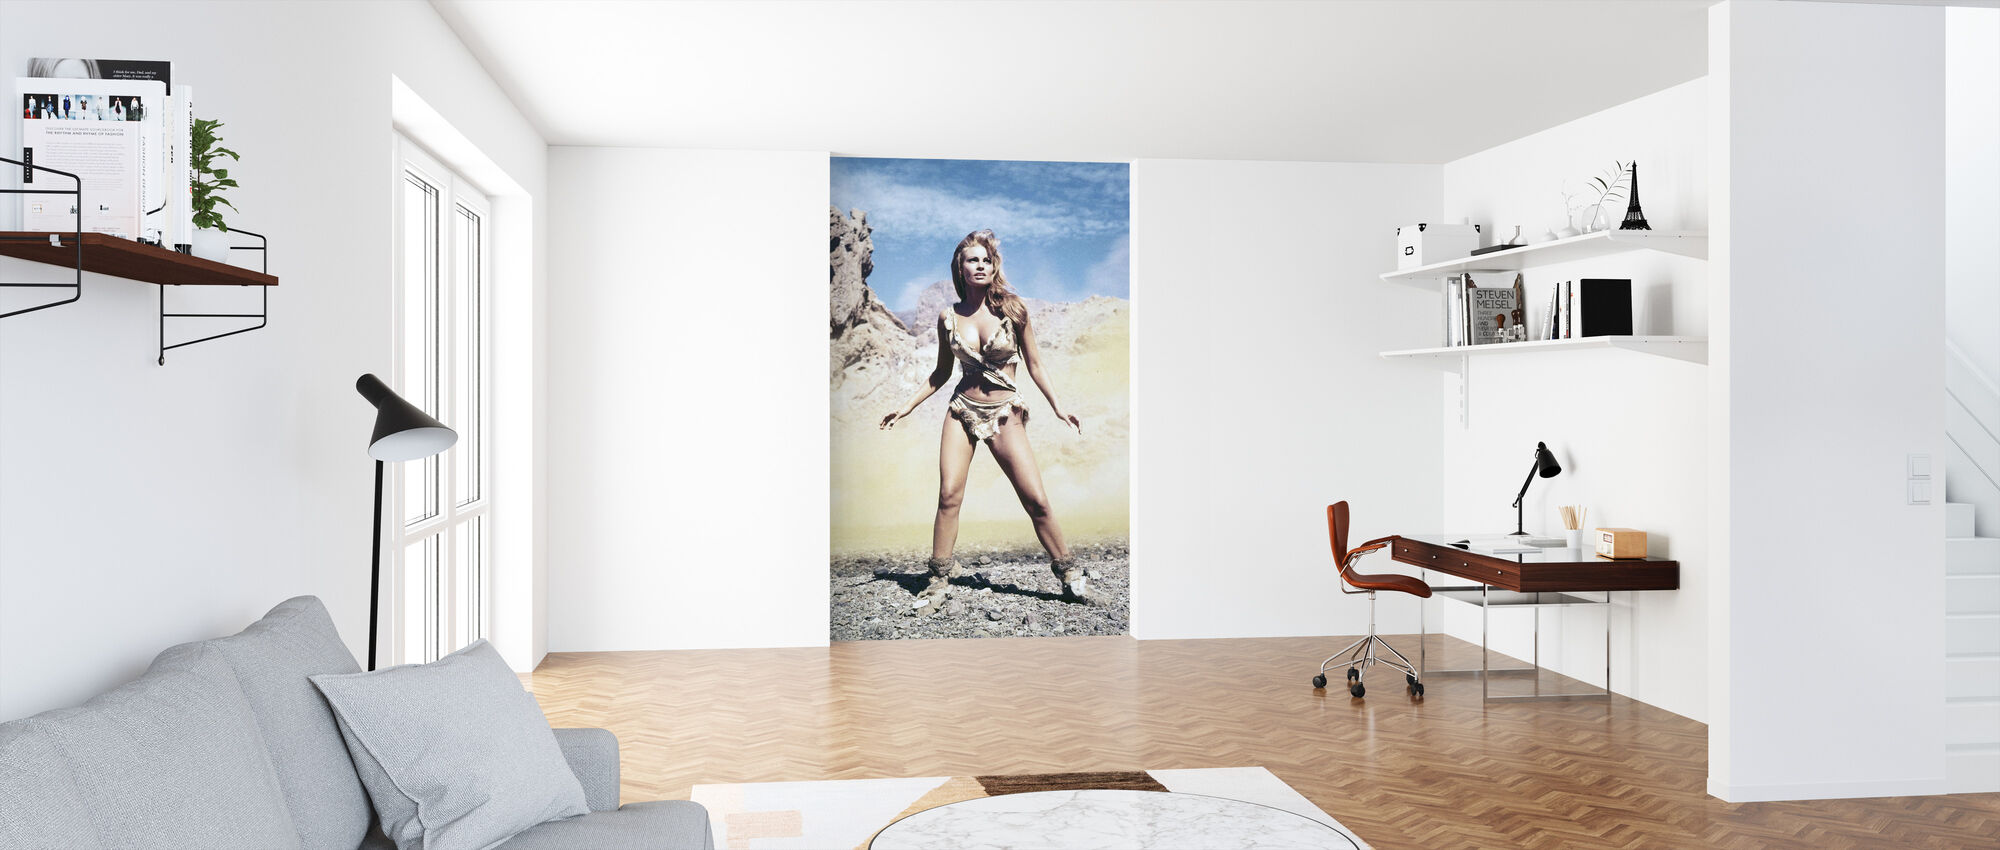 Raquel Welch in One Million Years B. C. - Wallpaper - Office